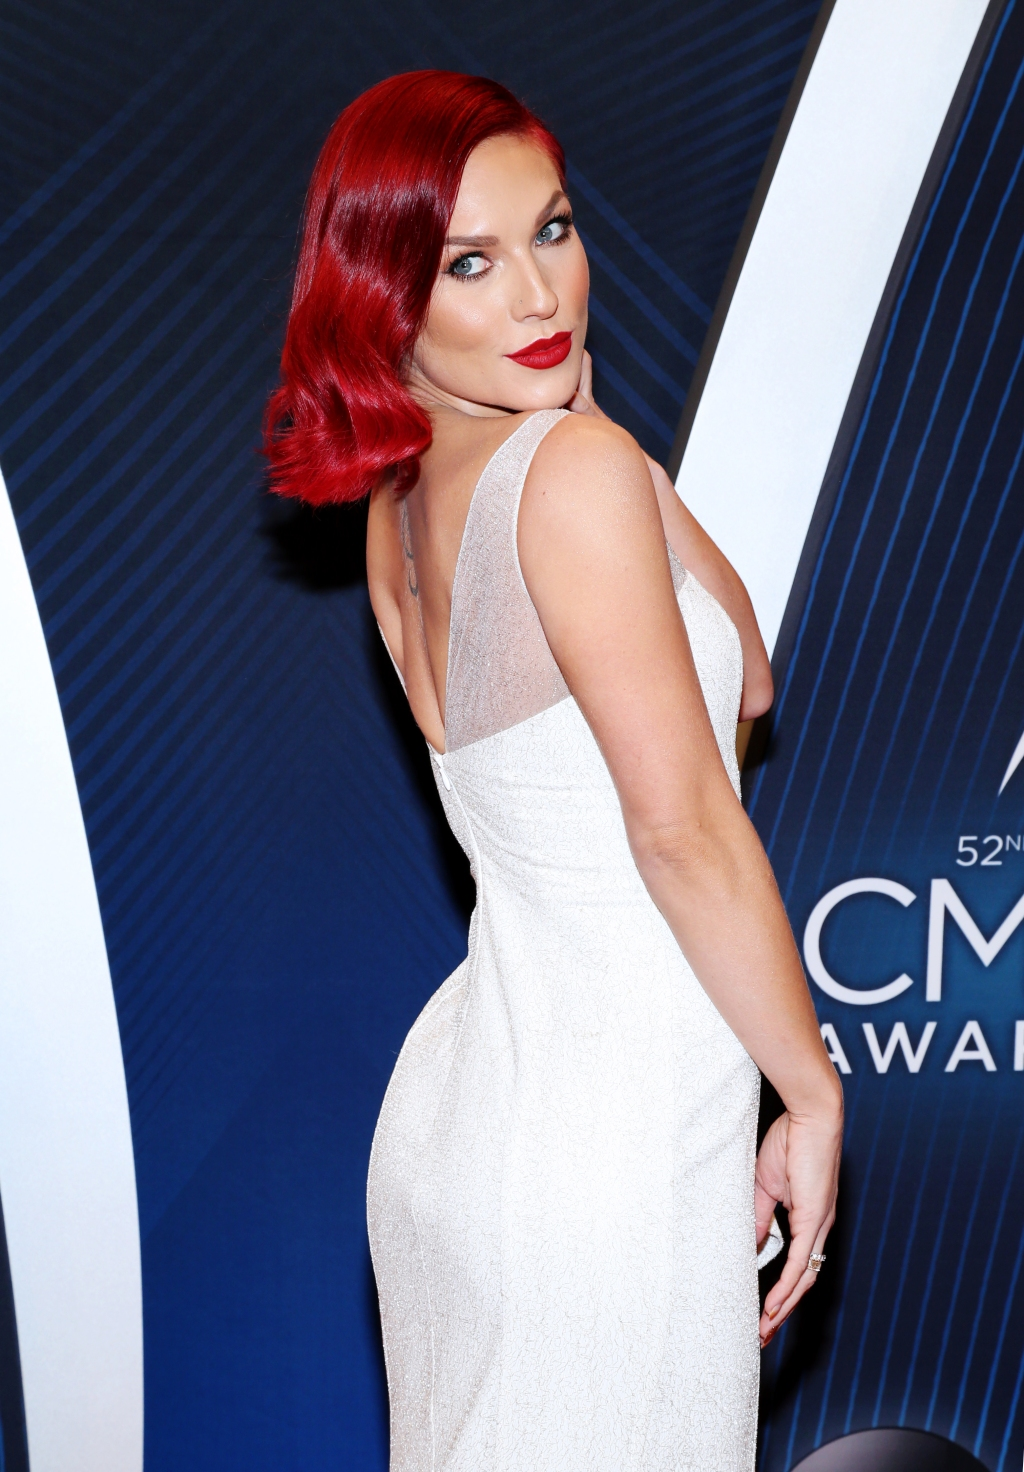 'Dancing With the Stars' instructor Sharna Burgess presented an honor with her dancing partner, DJ Bobby Bones.